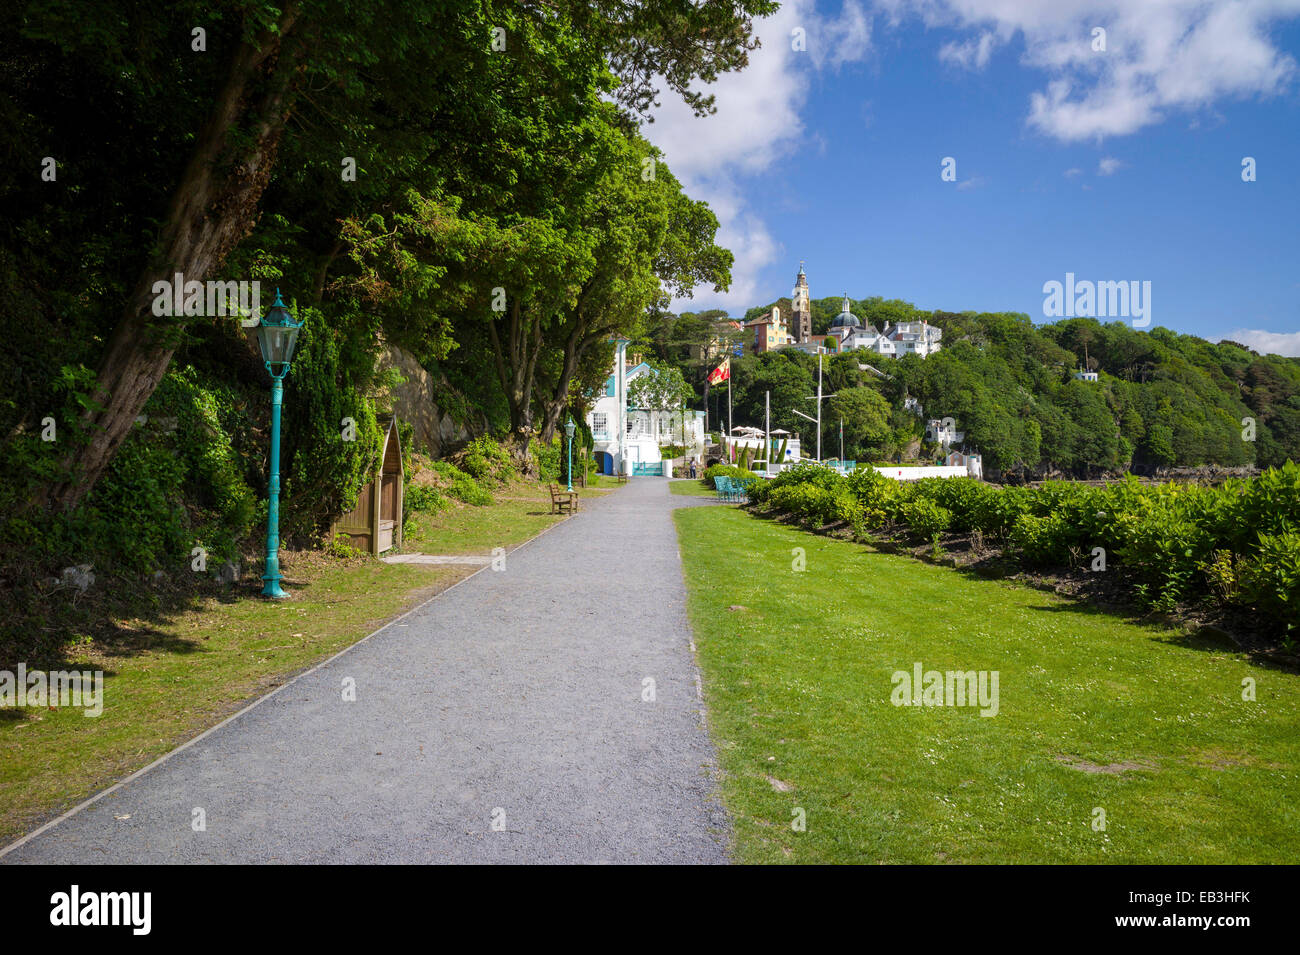 Portmeirion Hotel, quayside walk, Portmeirion village in the wooded background, on the estuary of the river Dwyryd. - Stock Image